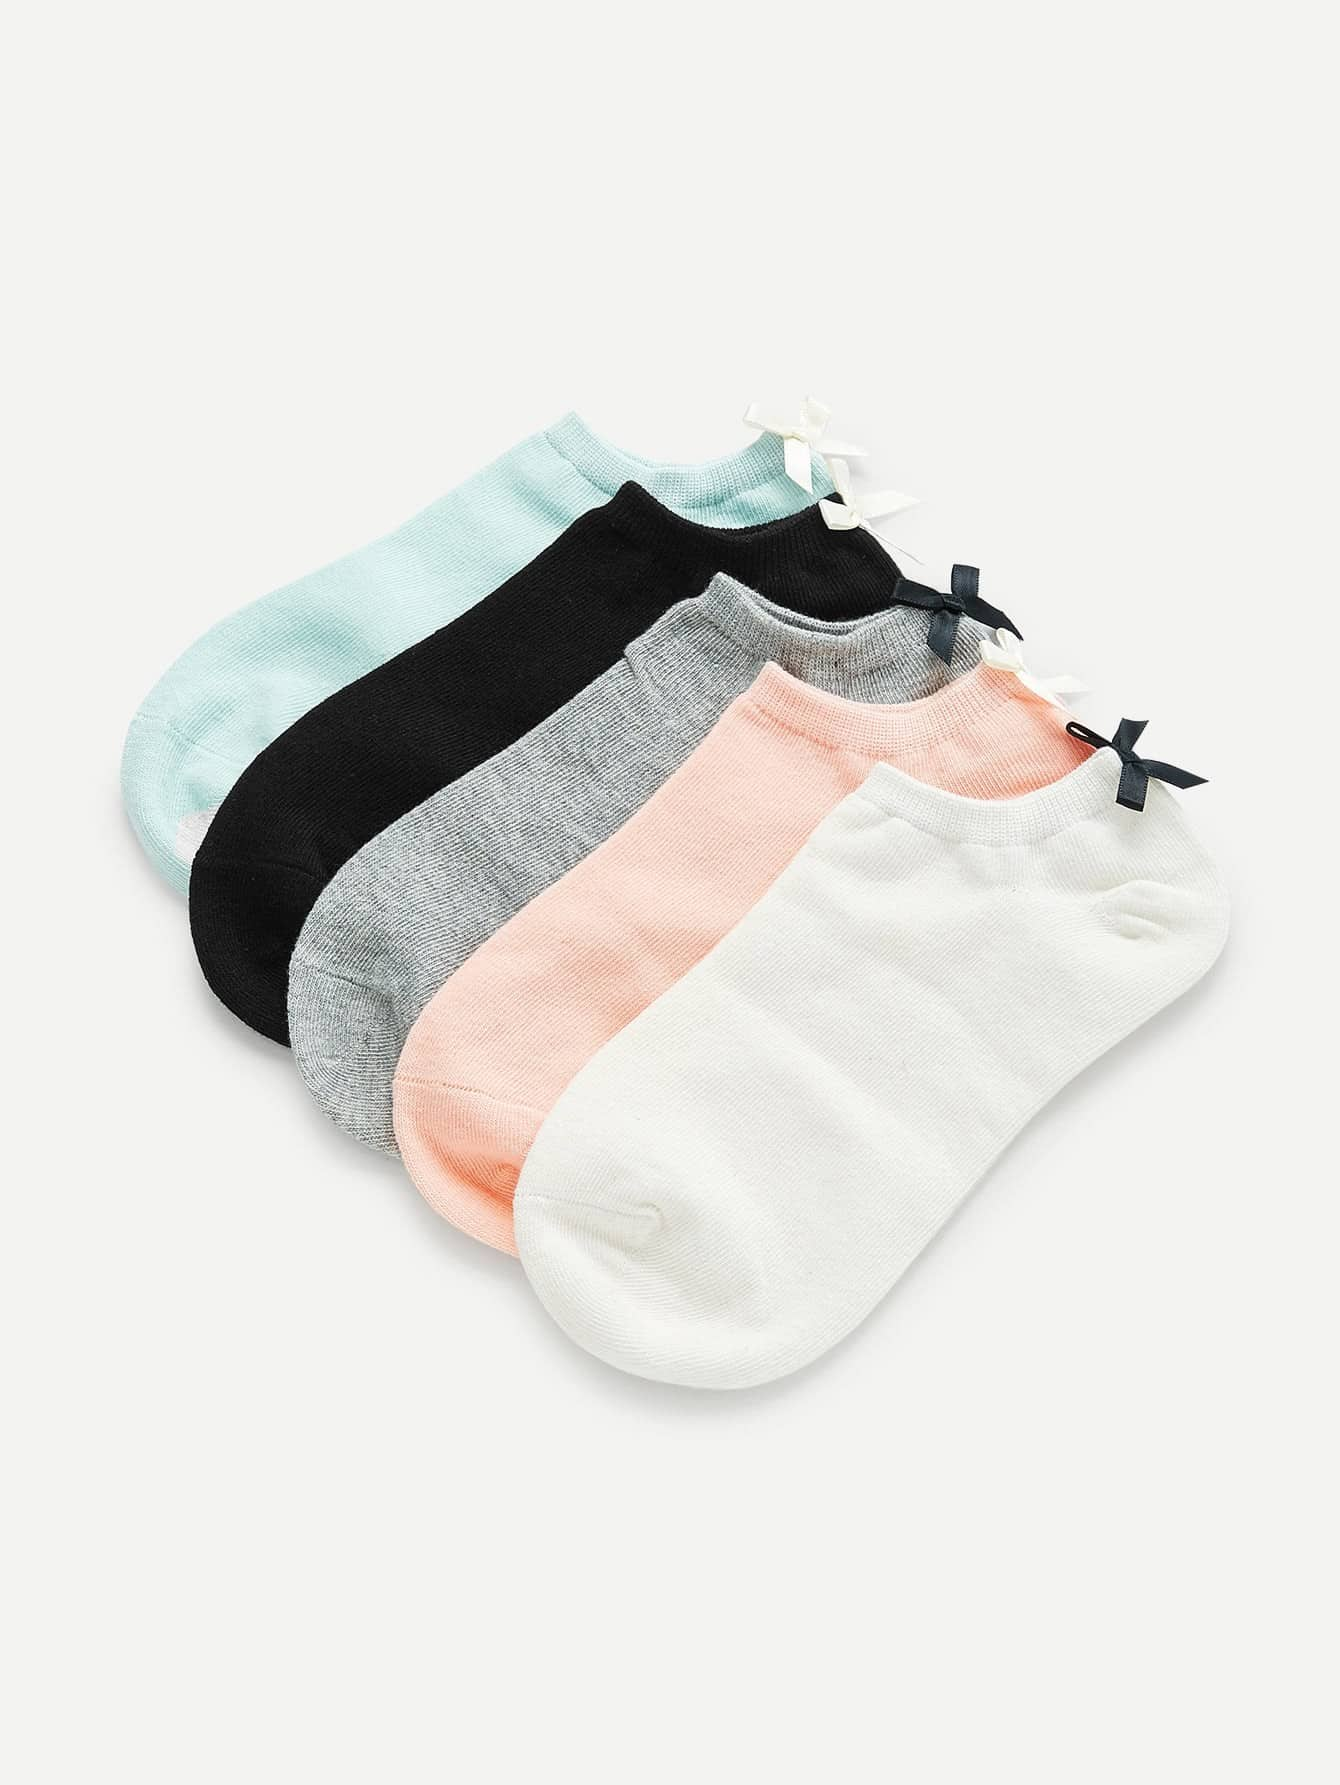 Bow Detail Ankle Socks 5Pairs женские чулки 1 5pairs